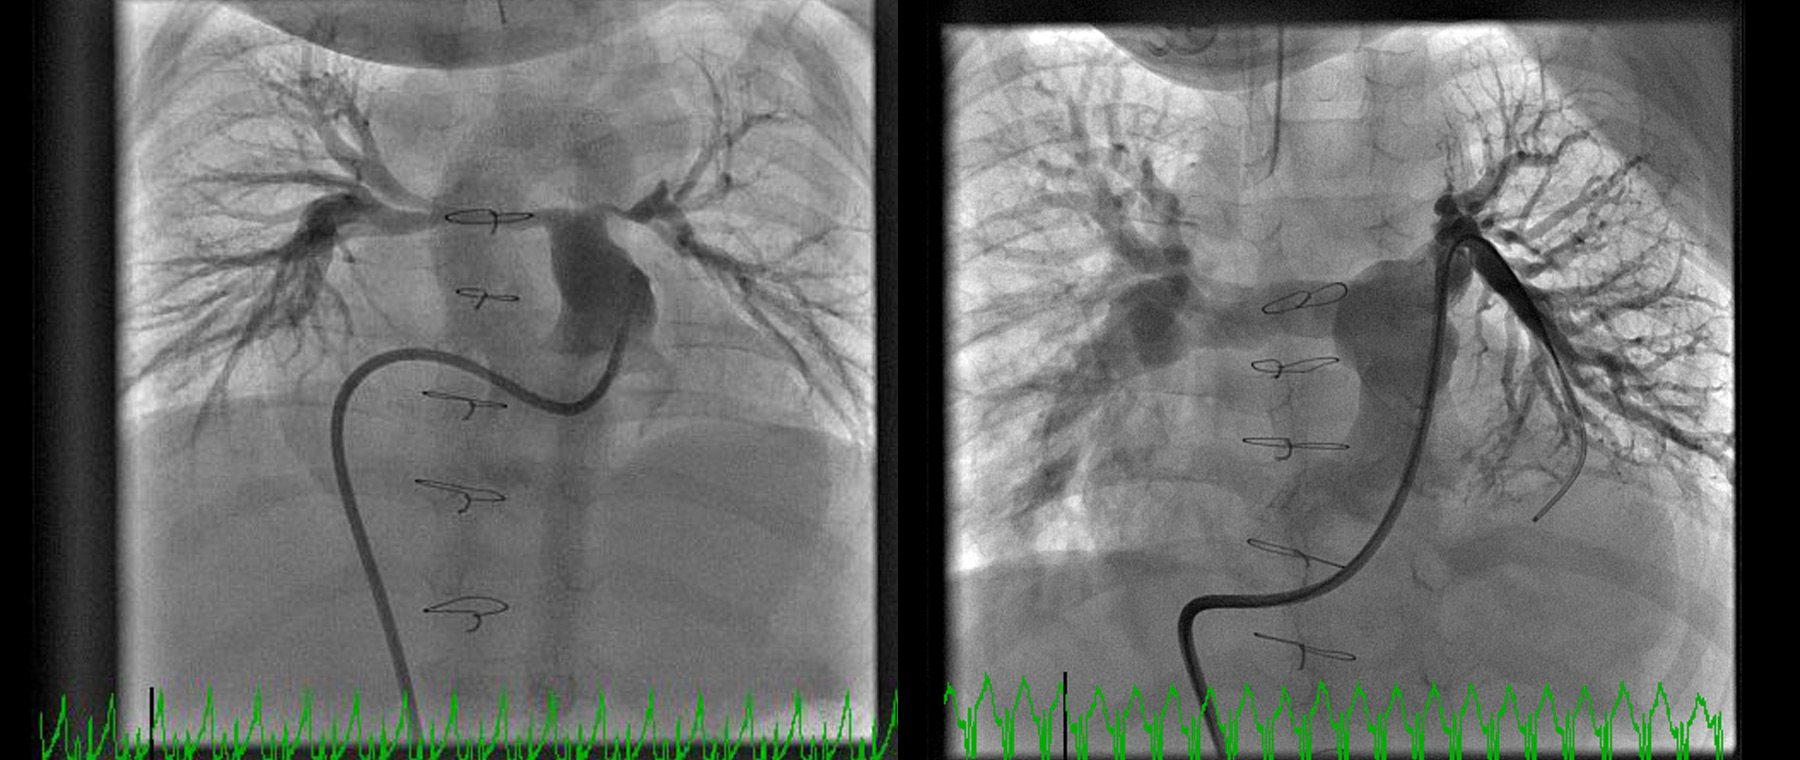 Nolan's before and after x-rays: his arteries remained extremely small (left) and the hole in his heart could not be closed until they could be enlarged. He was brought to the catheterization laboratory for five procedures over several years to enlarge and stent his pulmonary arteries, significantly improving their size (right). Photos: courtesy of CHEO